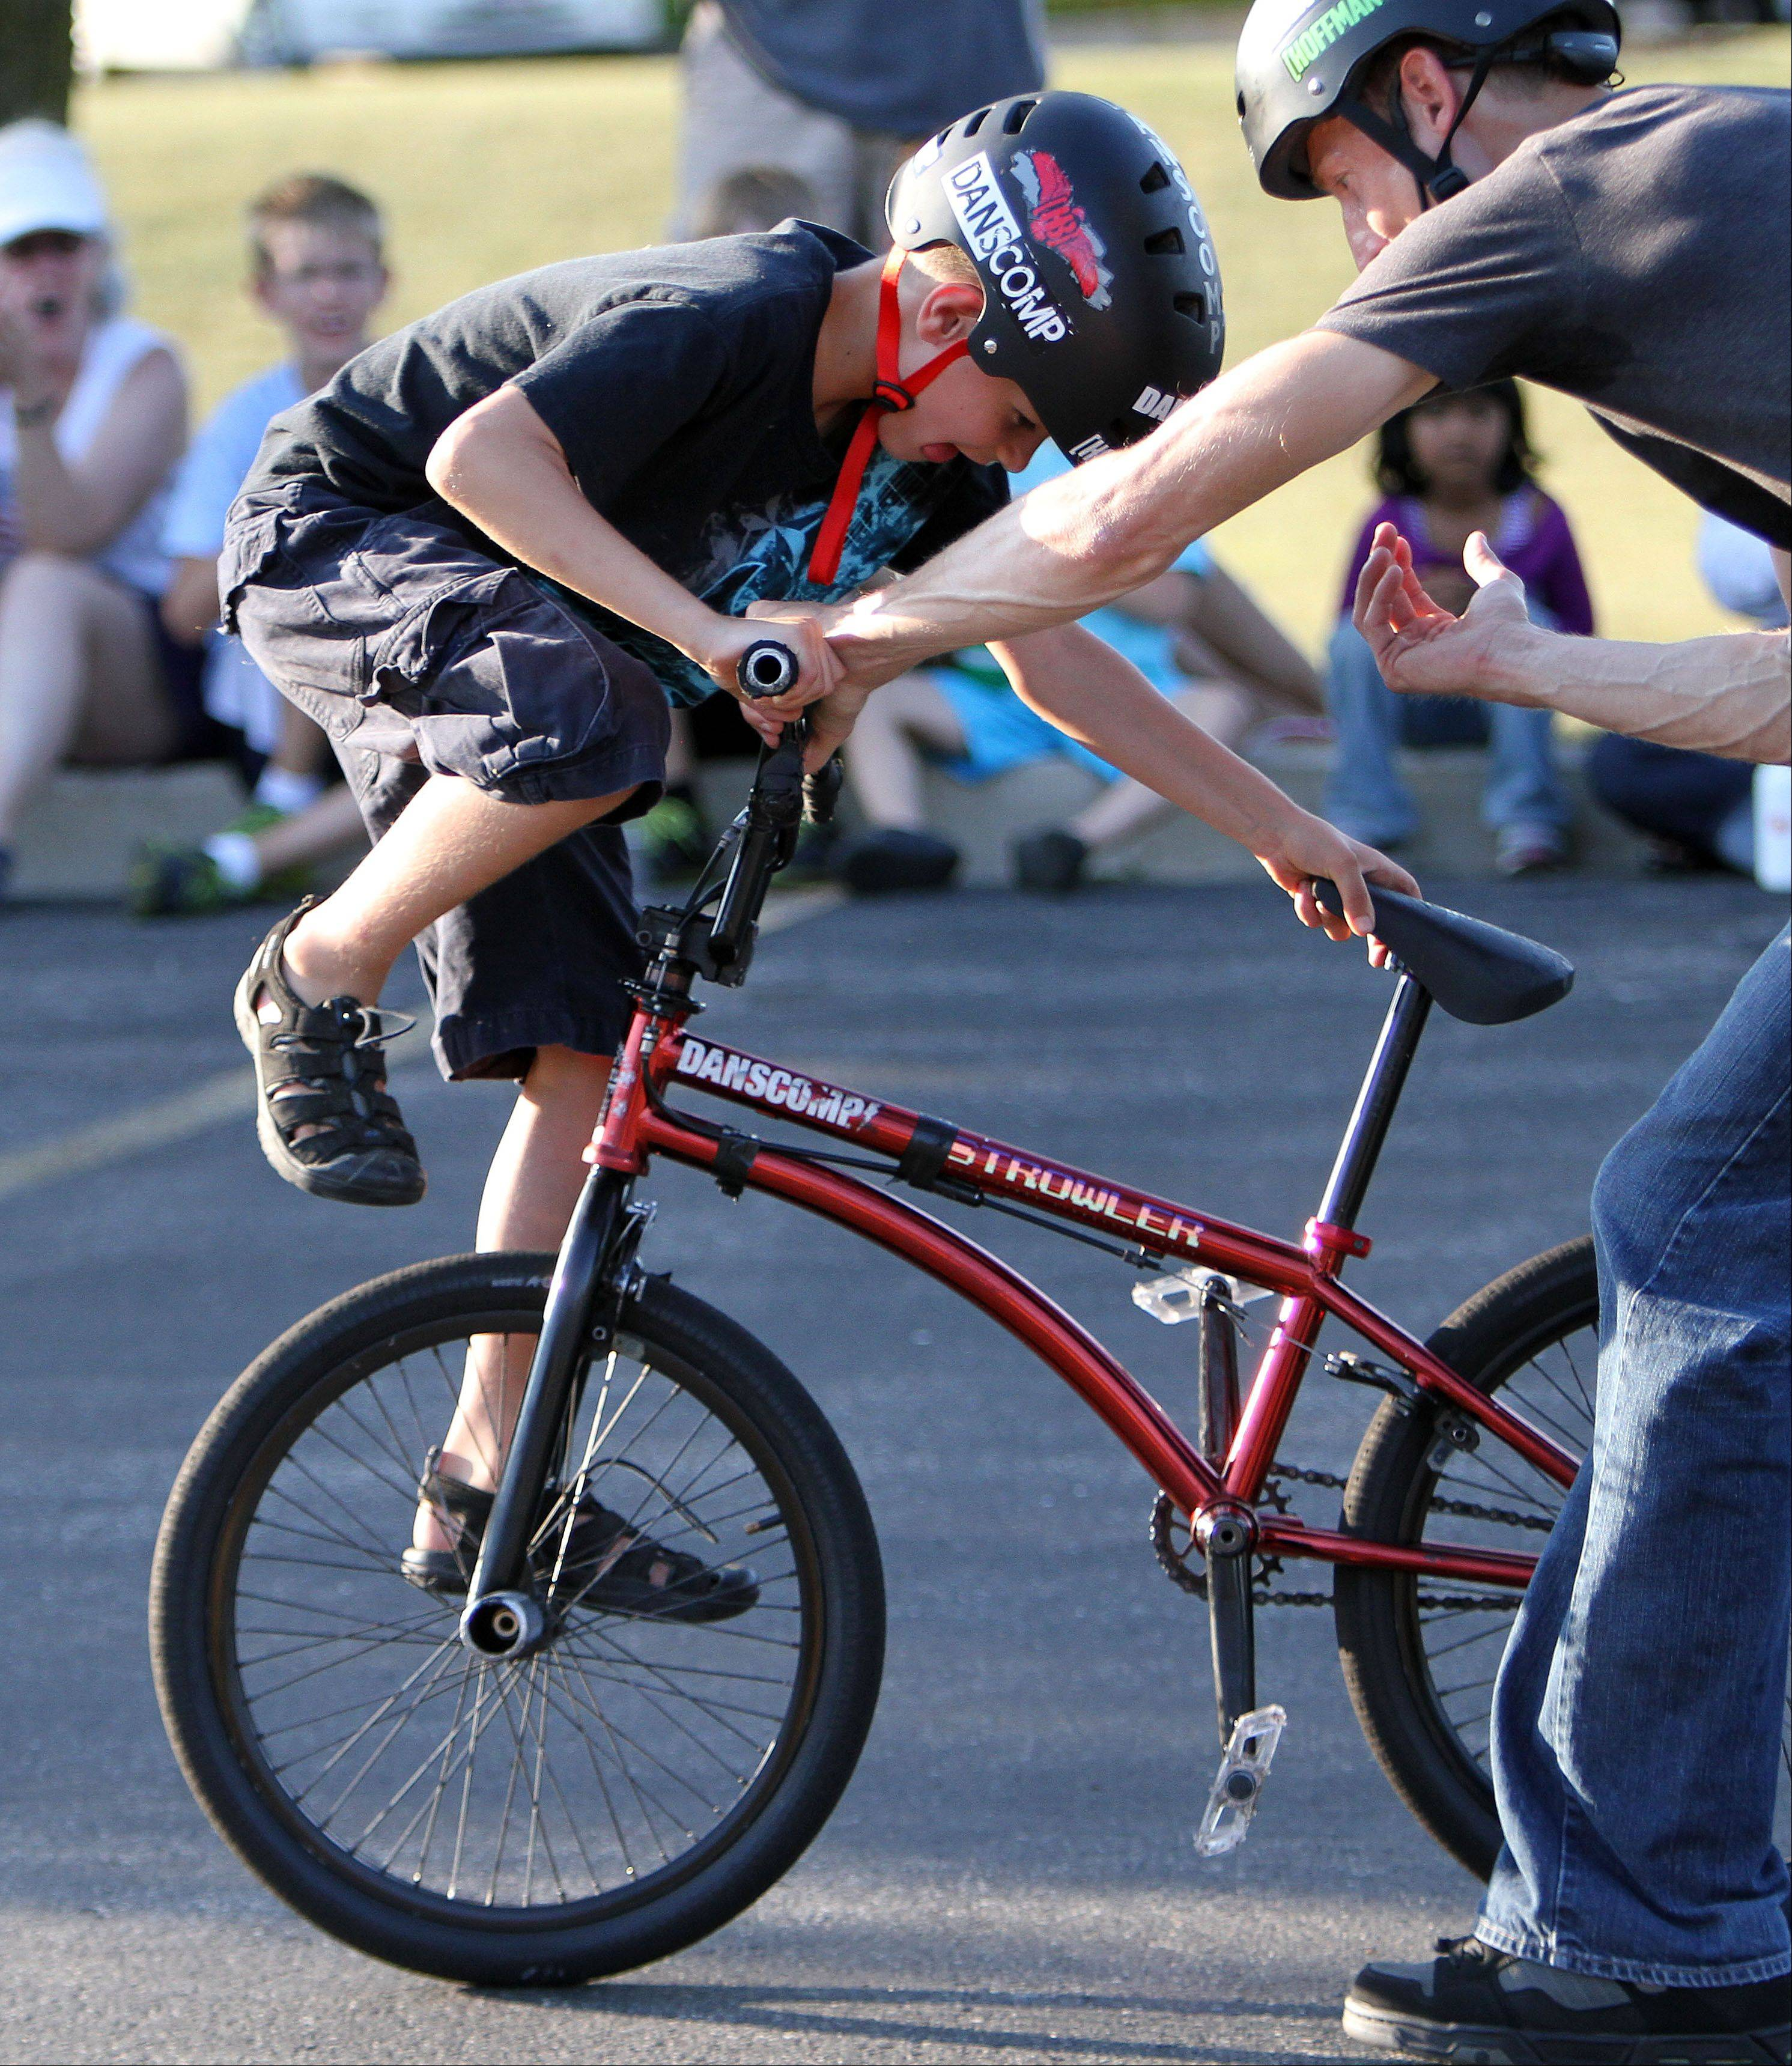 8-year-old Xander Jakubisin of Third Lake learns a trick from BMX expert Matt Wilhelm during a performance at Grayslake Public Library Wednesday. Wilhelm has won numerous contests including X-Games and national championships.